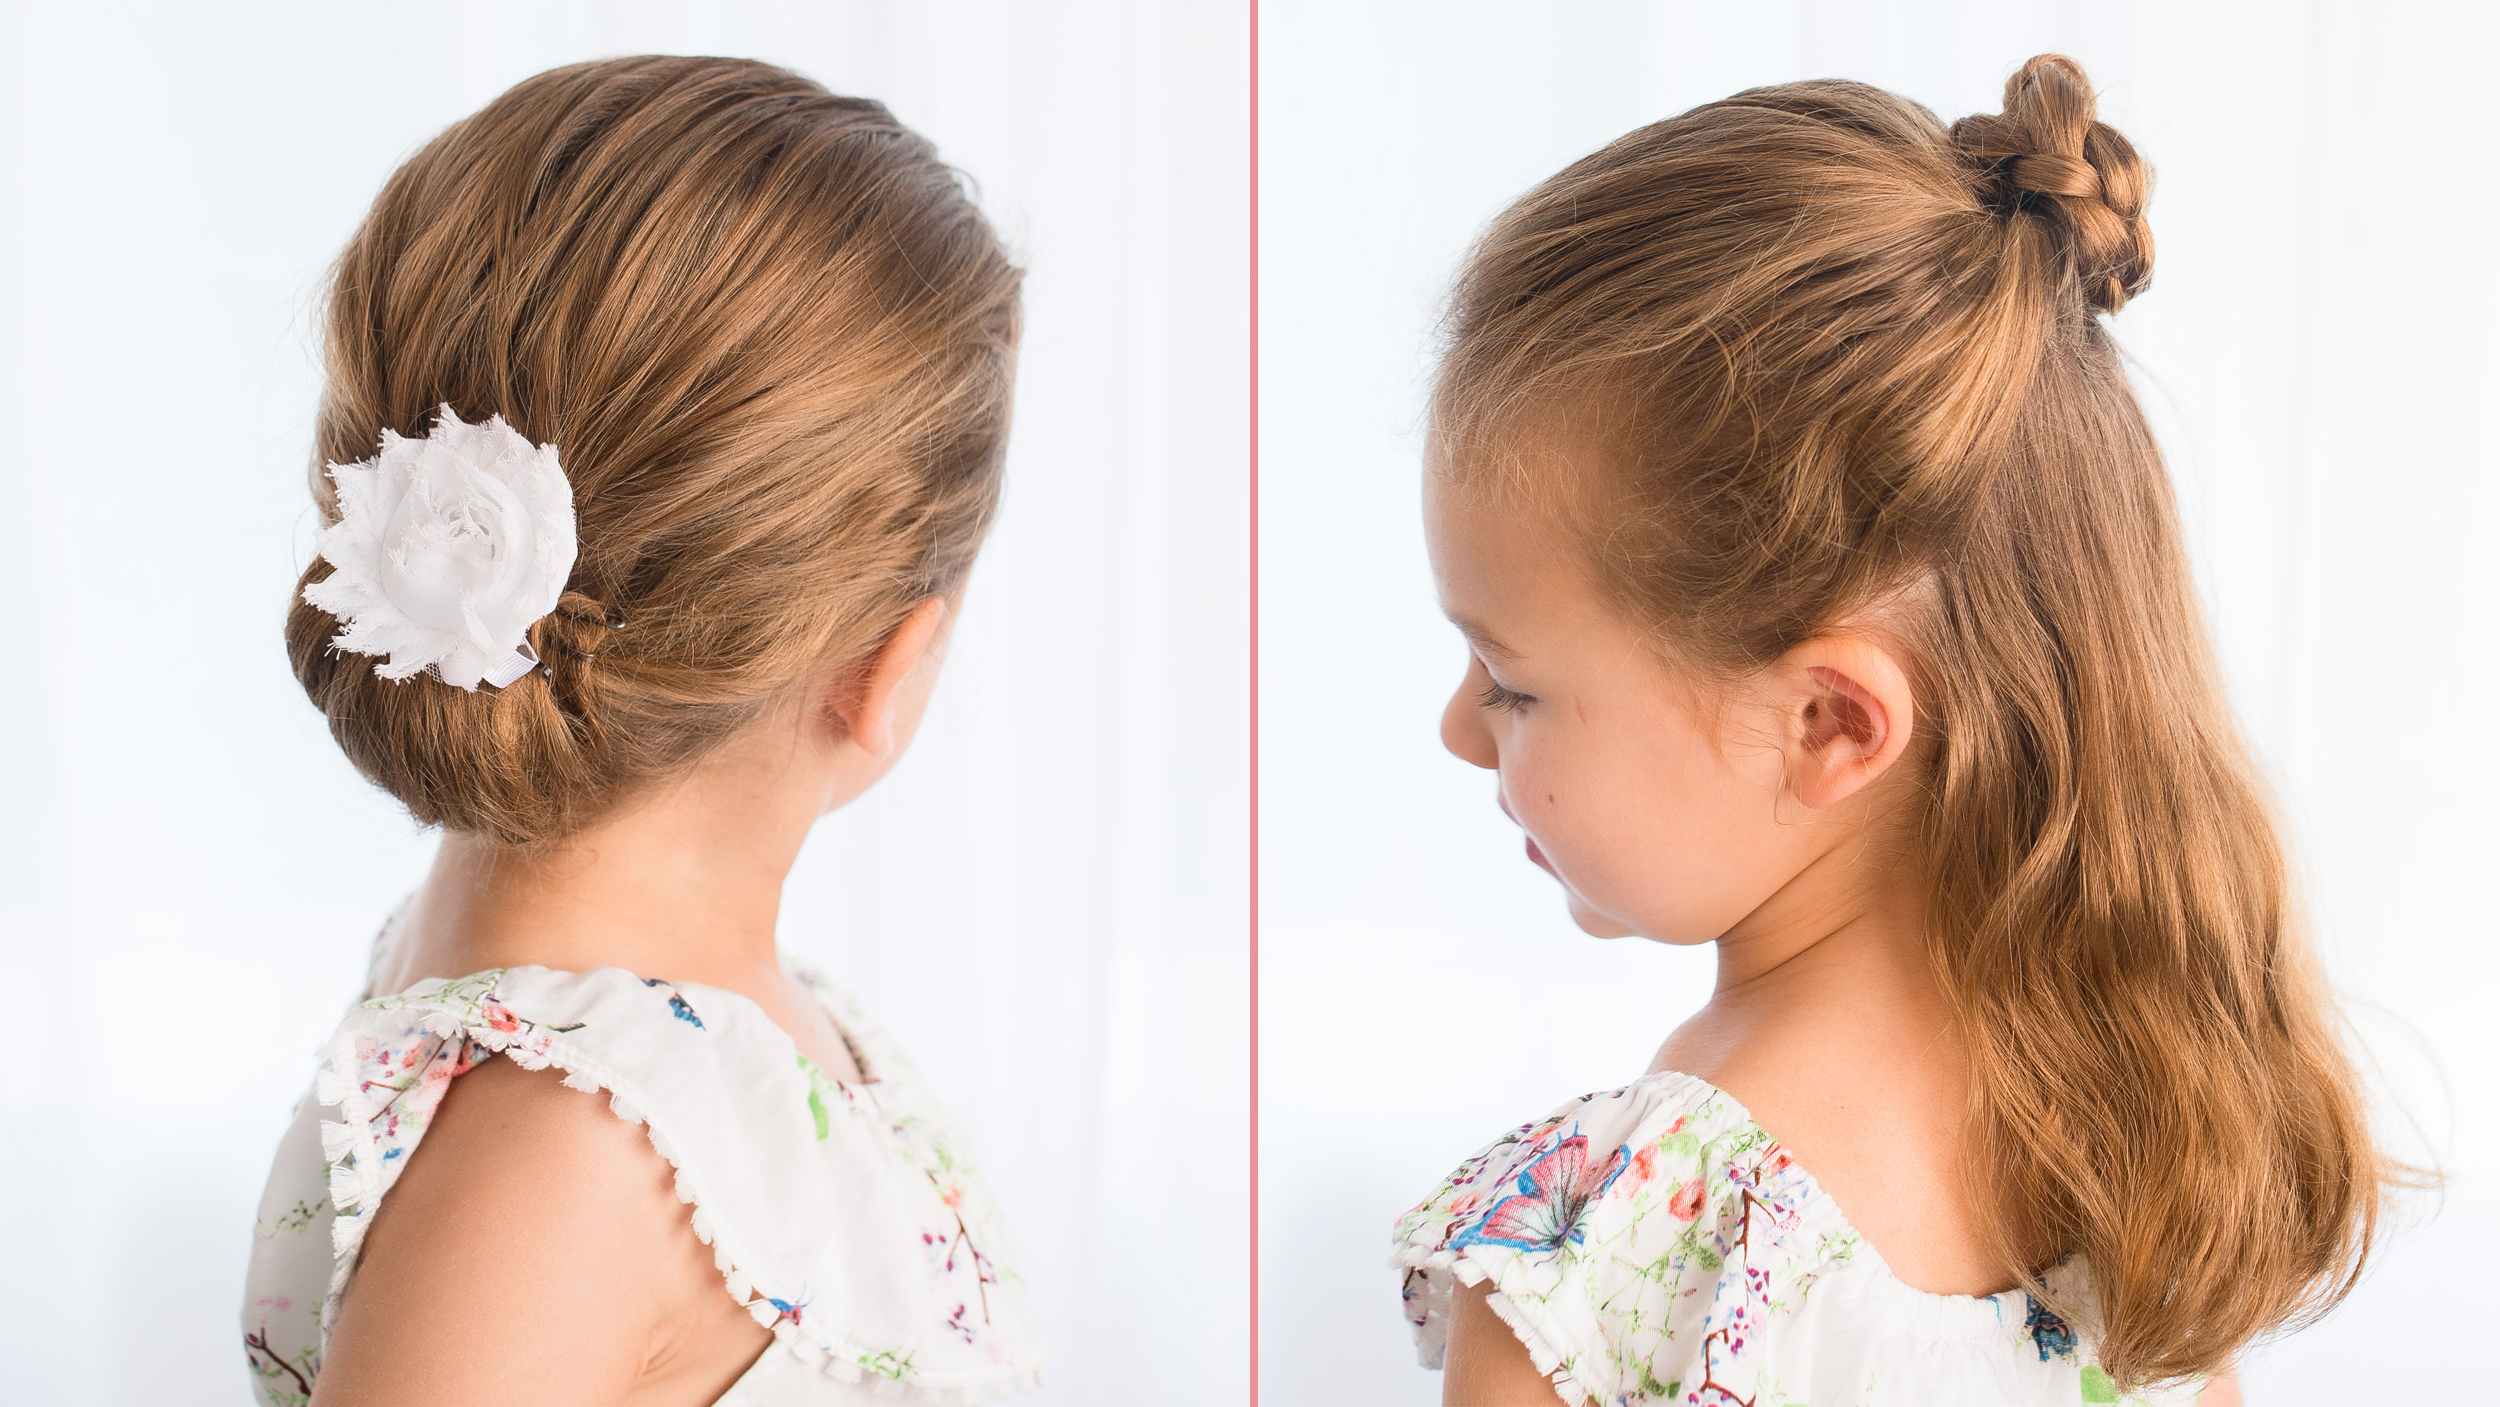 Toddler Hair Style: Easy Hairstyles For Girls That You Can Create In Minutes